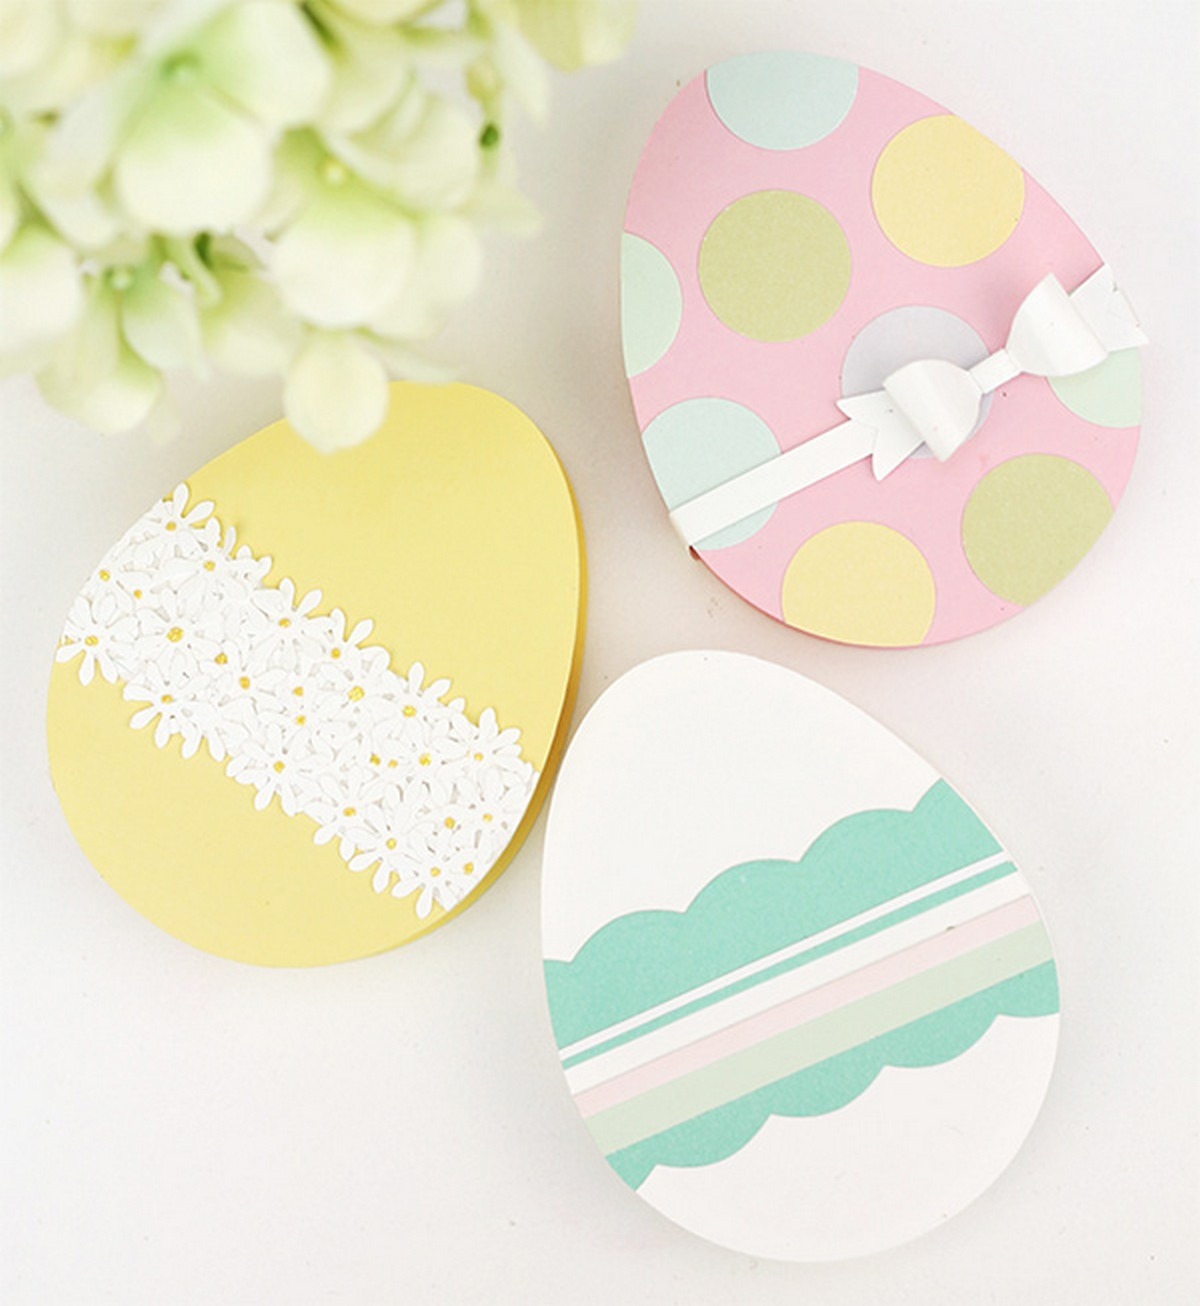 Making a cool candy box in the shape of an egg – so simple and so fun! Make fantastic Easter gift tags with little bunnies and chicks to personalize every gift and excite every guest.